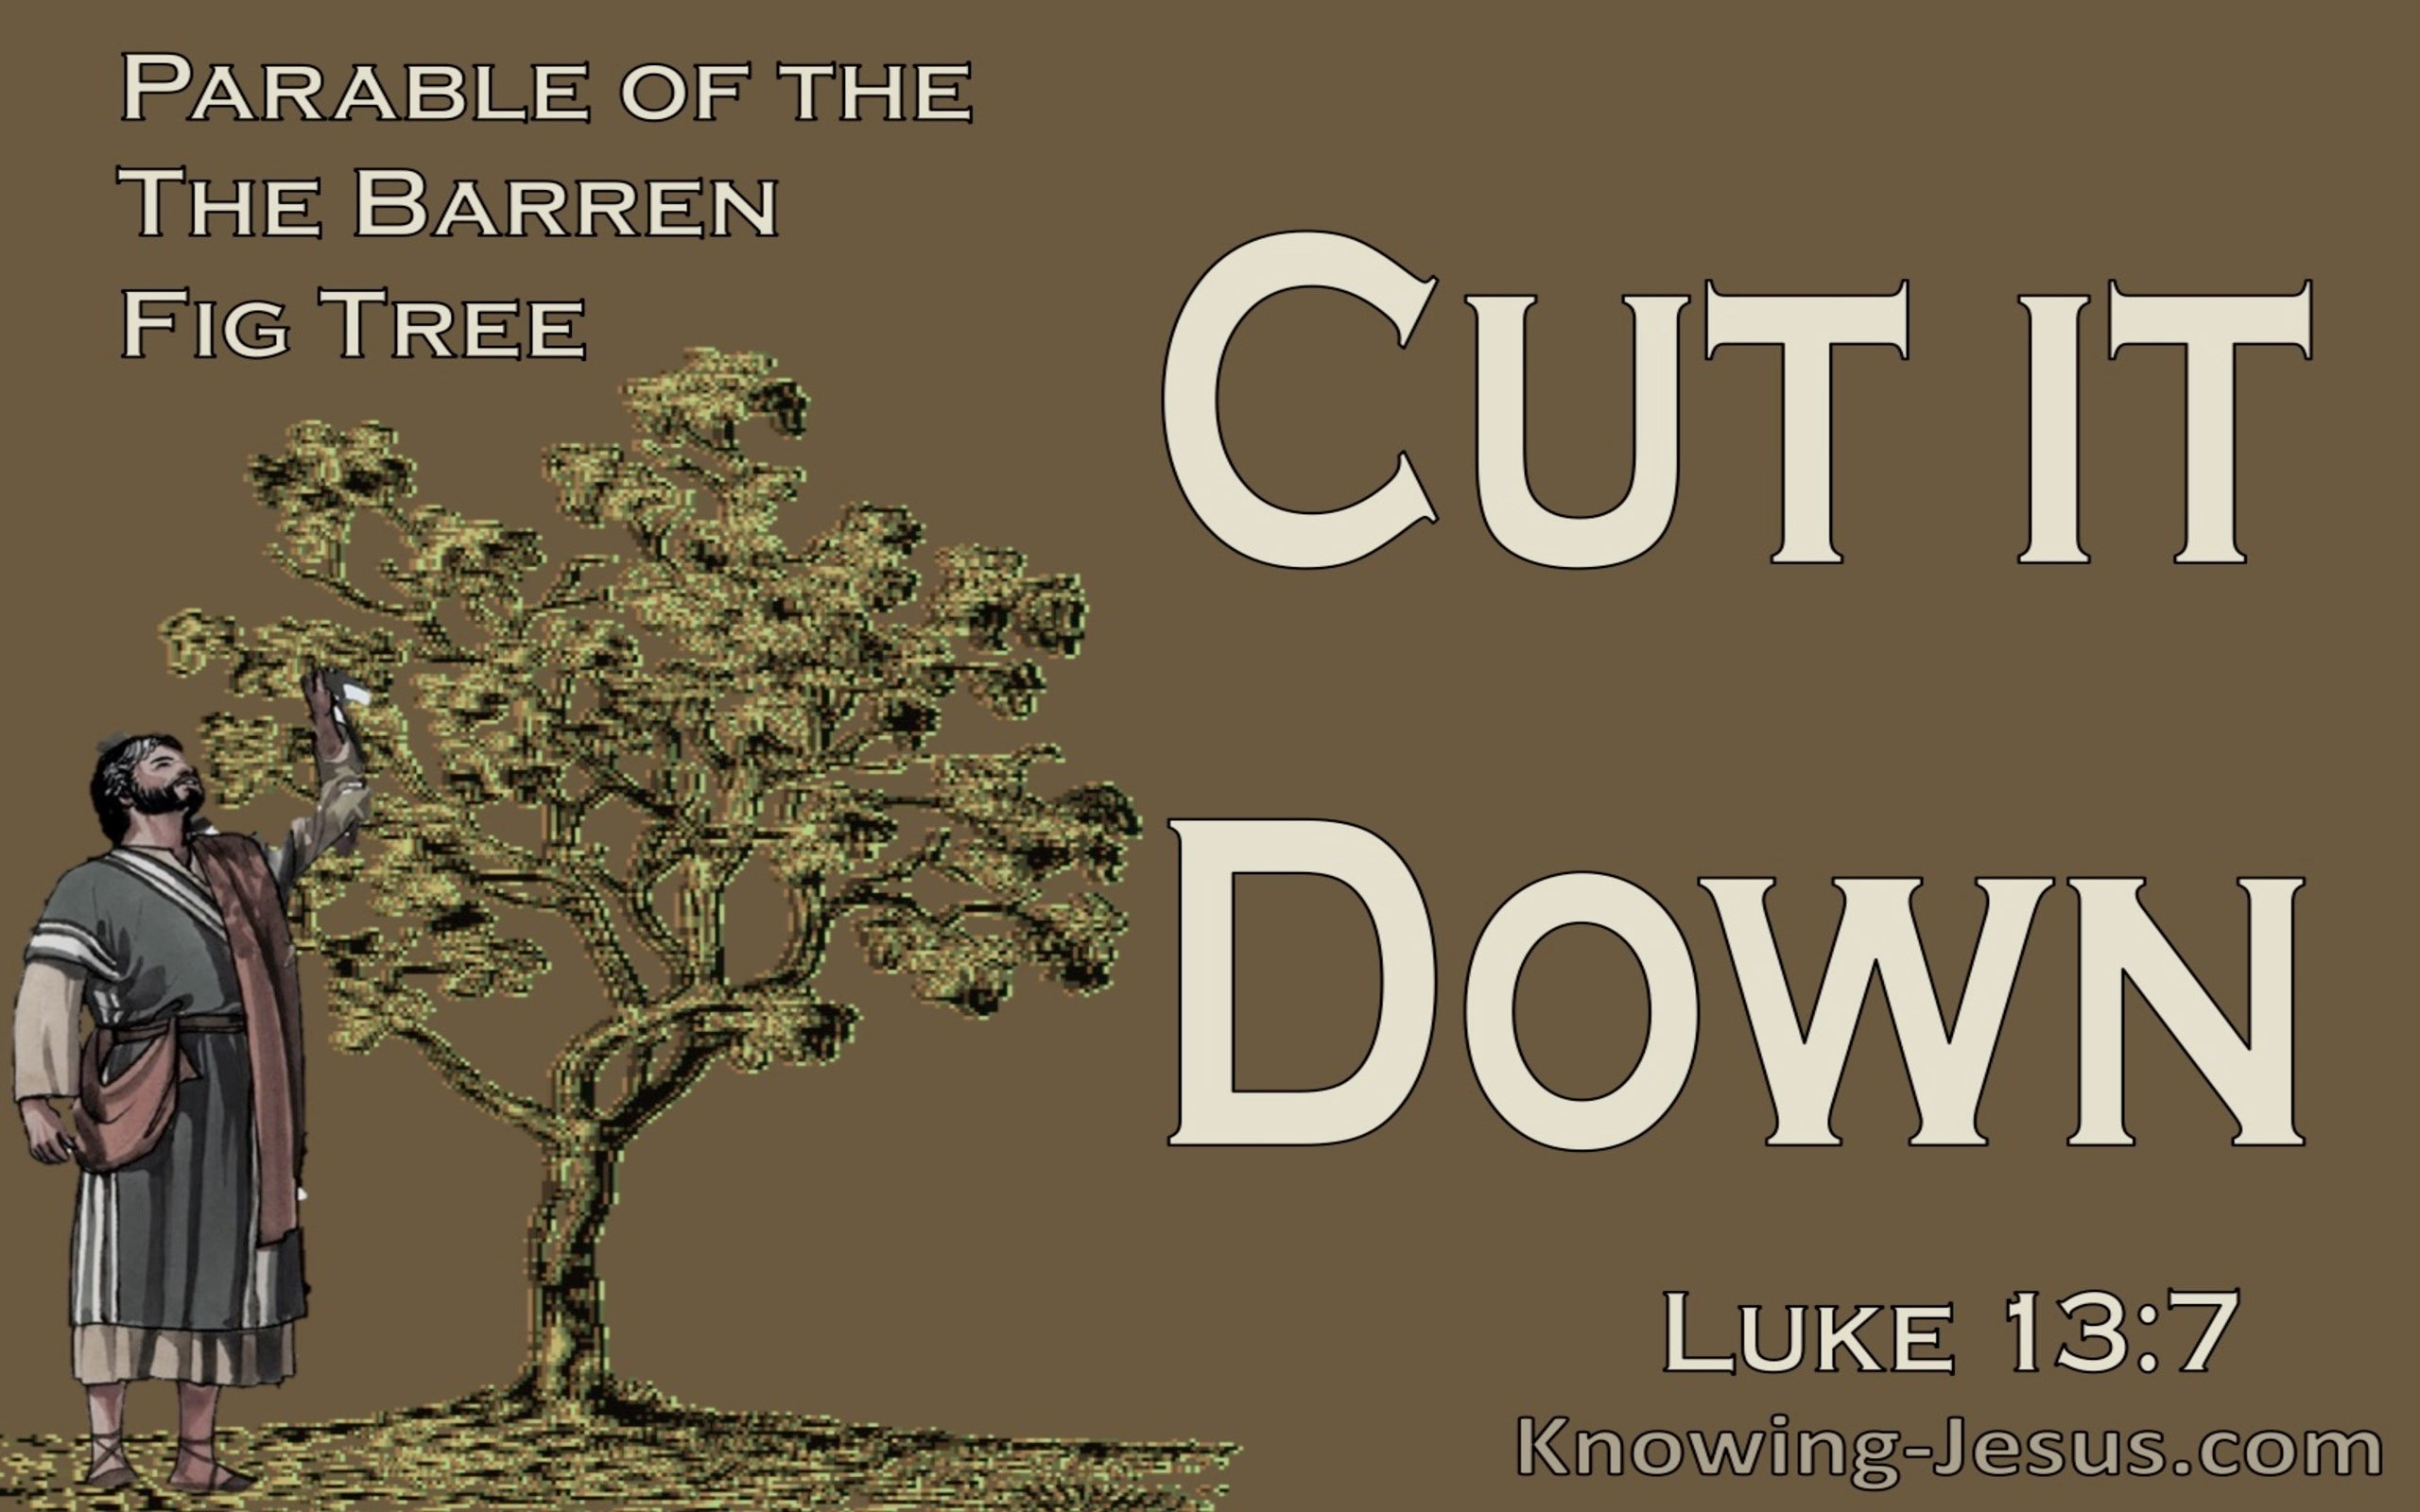 Luke 13:7 Parable Of The The Barren Fig Tree (brown)